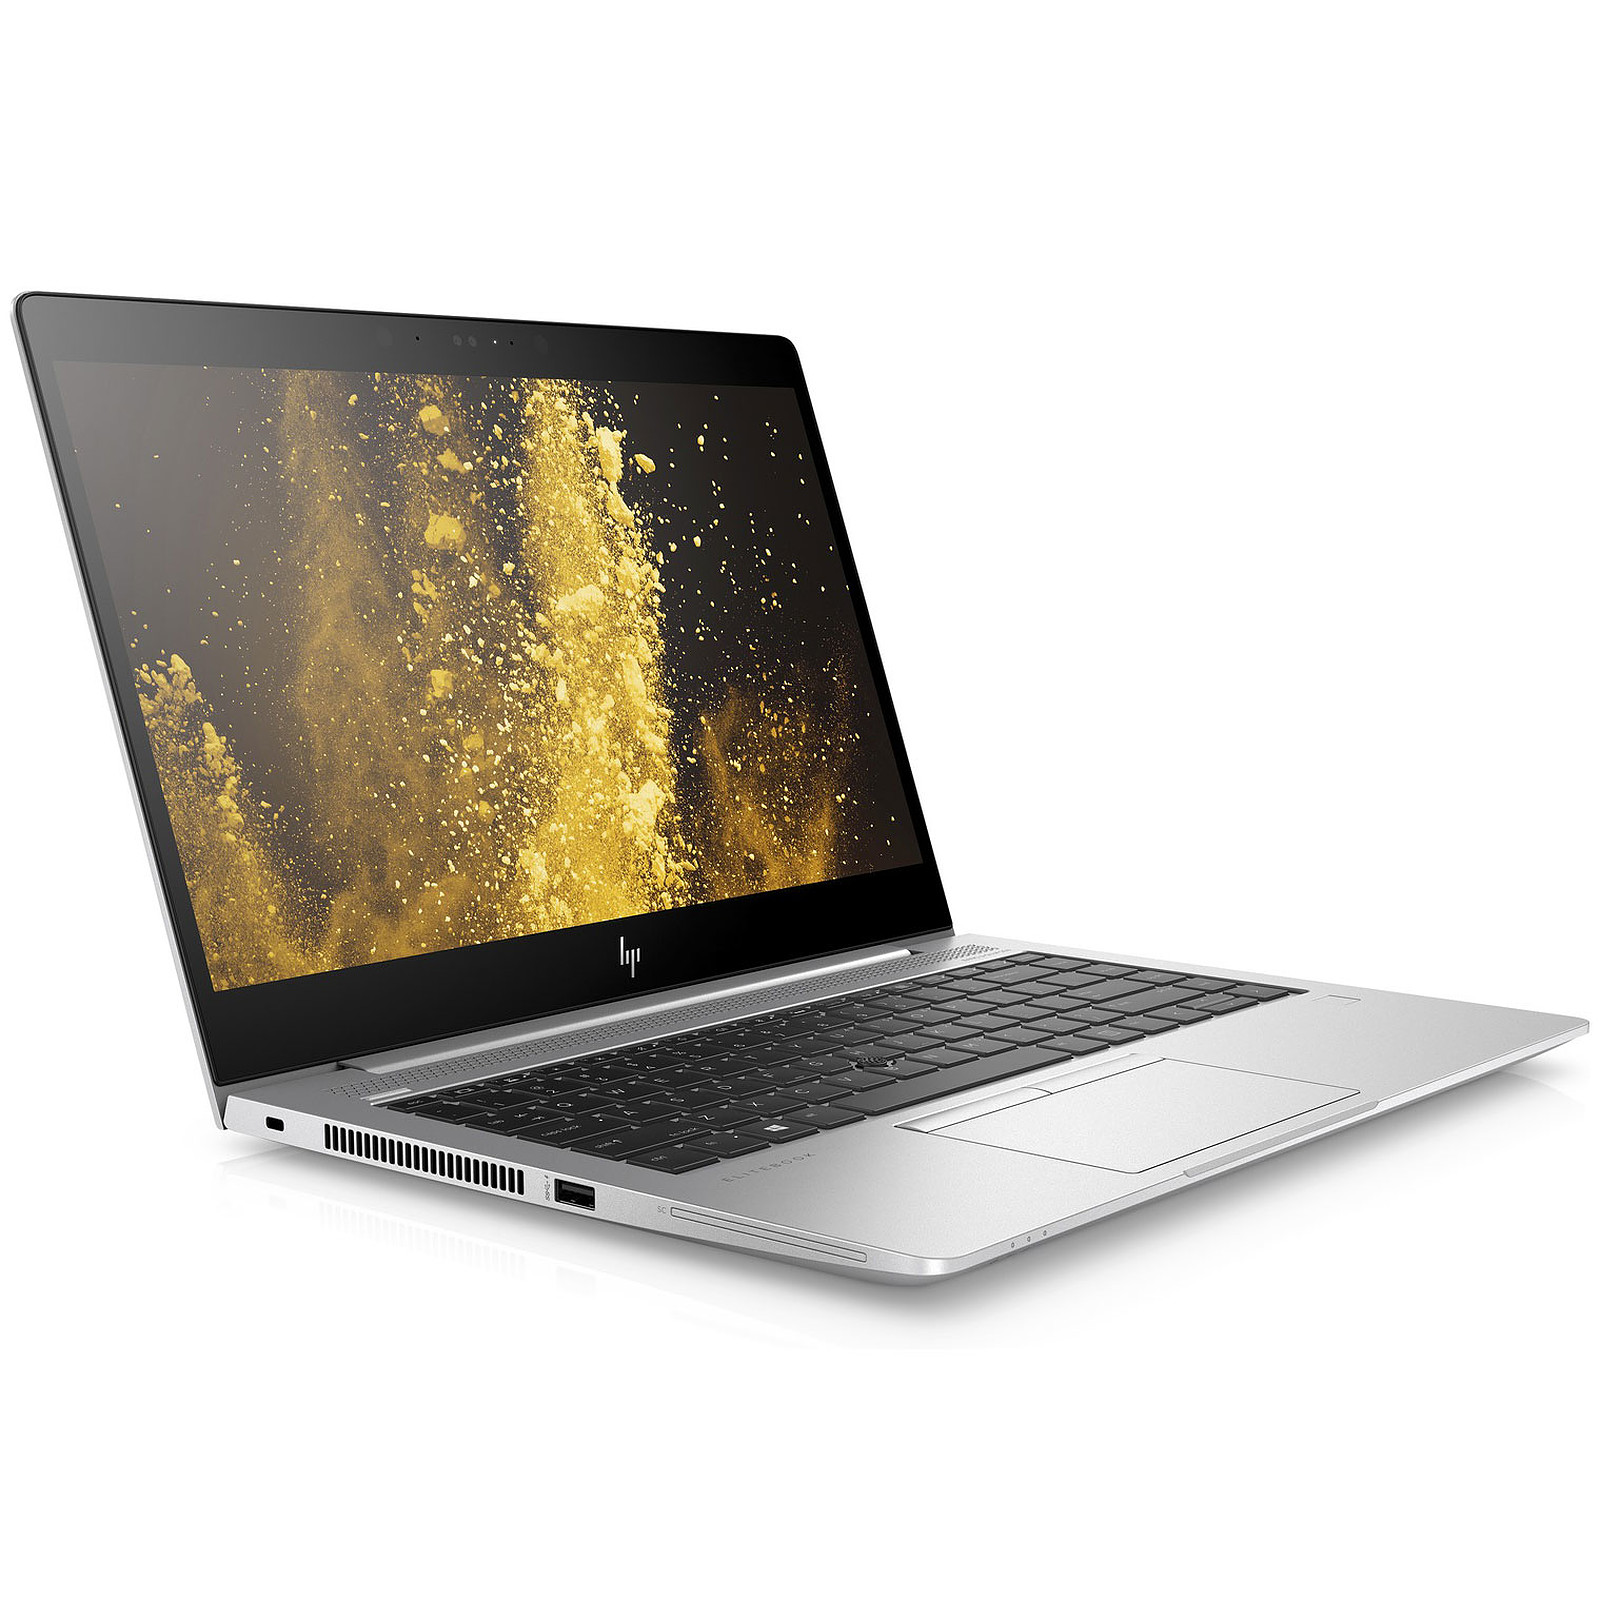 HP EliteBook 840 G5 (3JX00EA)